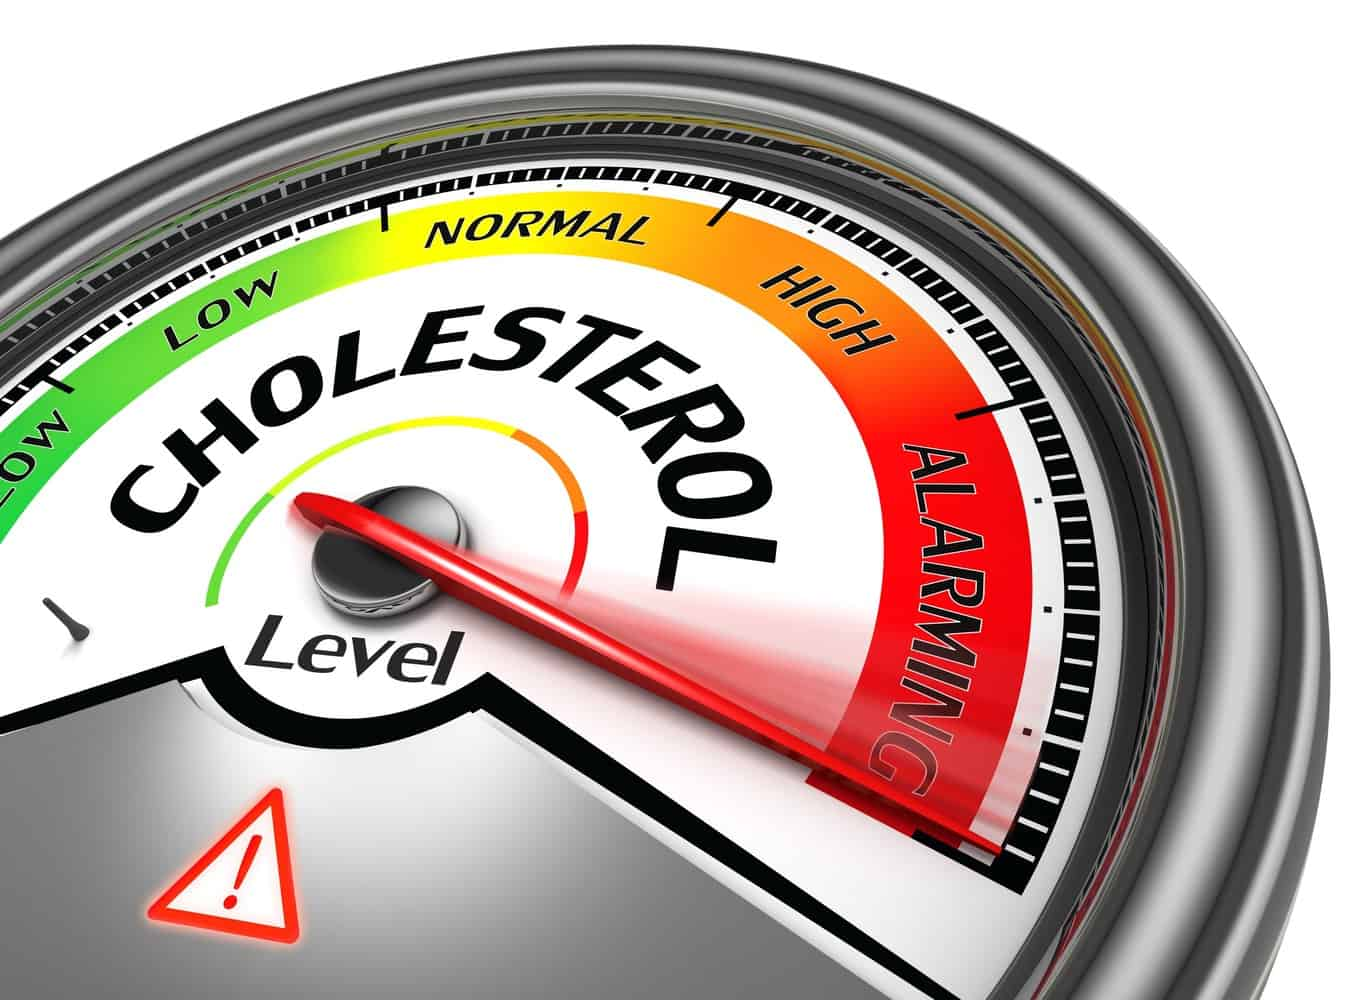 An indicator for cholesterol showing values in the red zone.